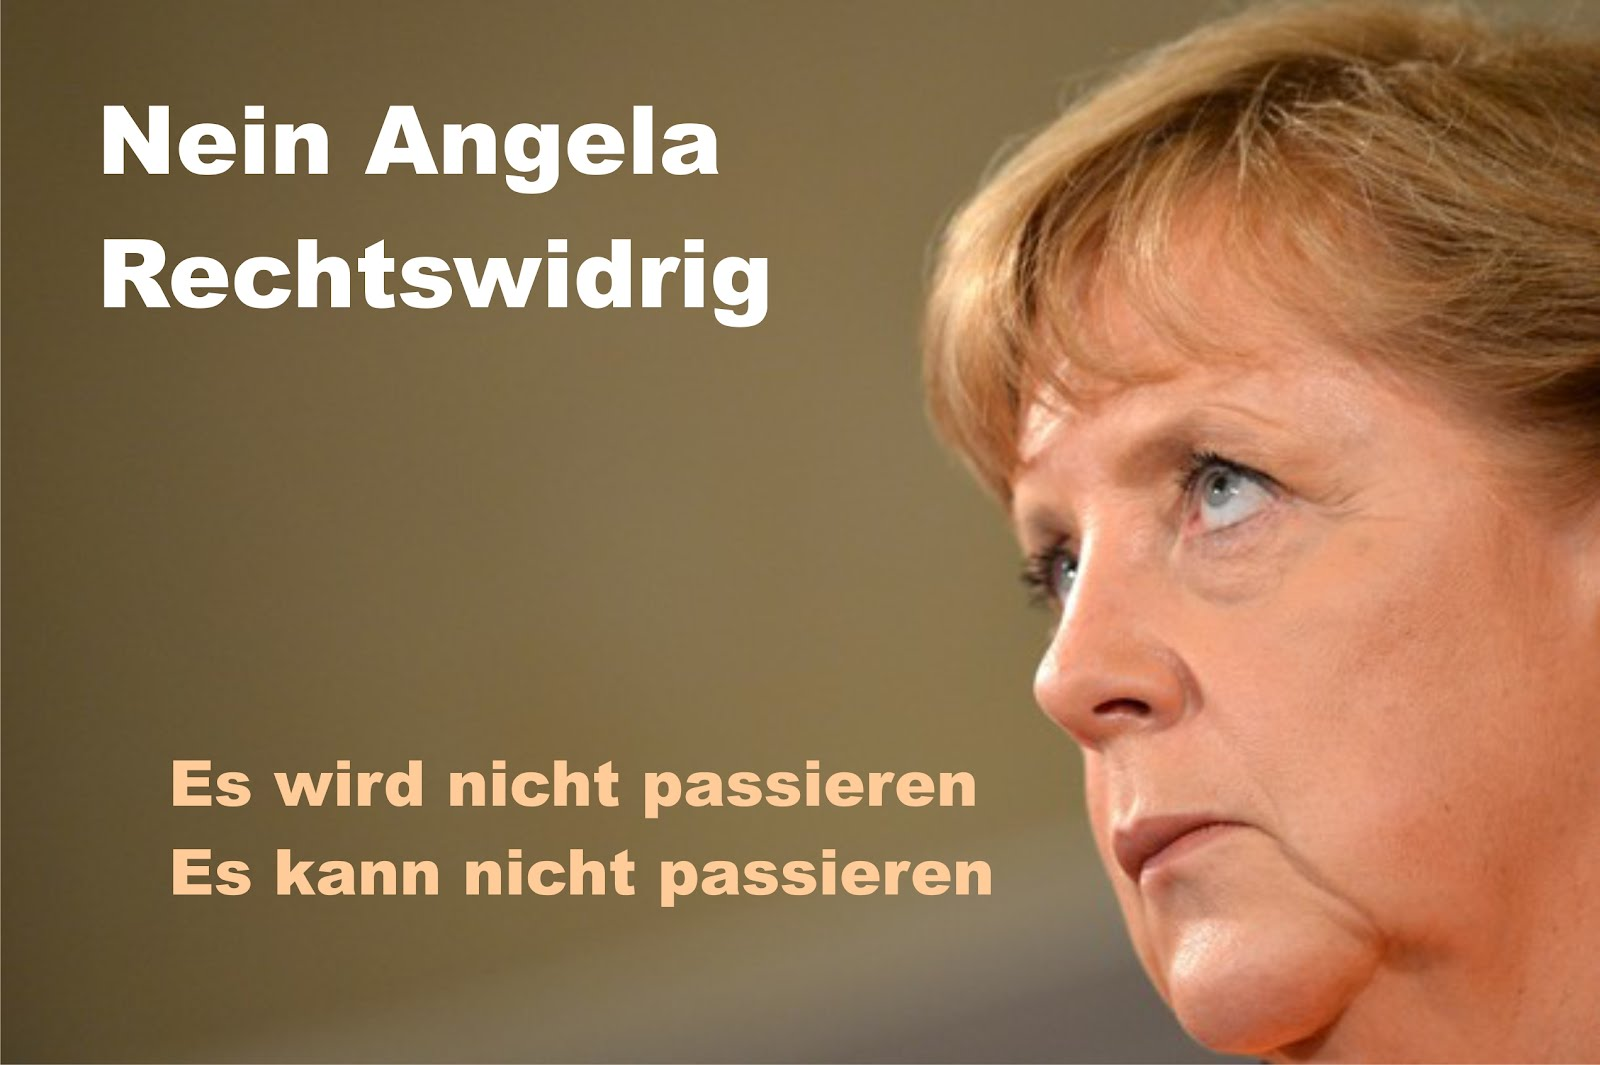 Angela, merkel is the feisty conservative Chancellor of Germany